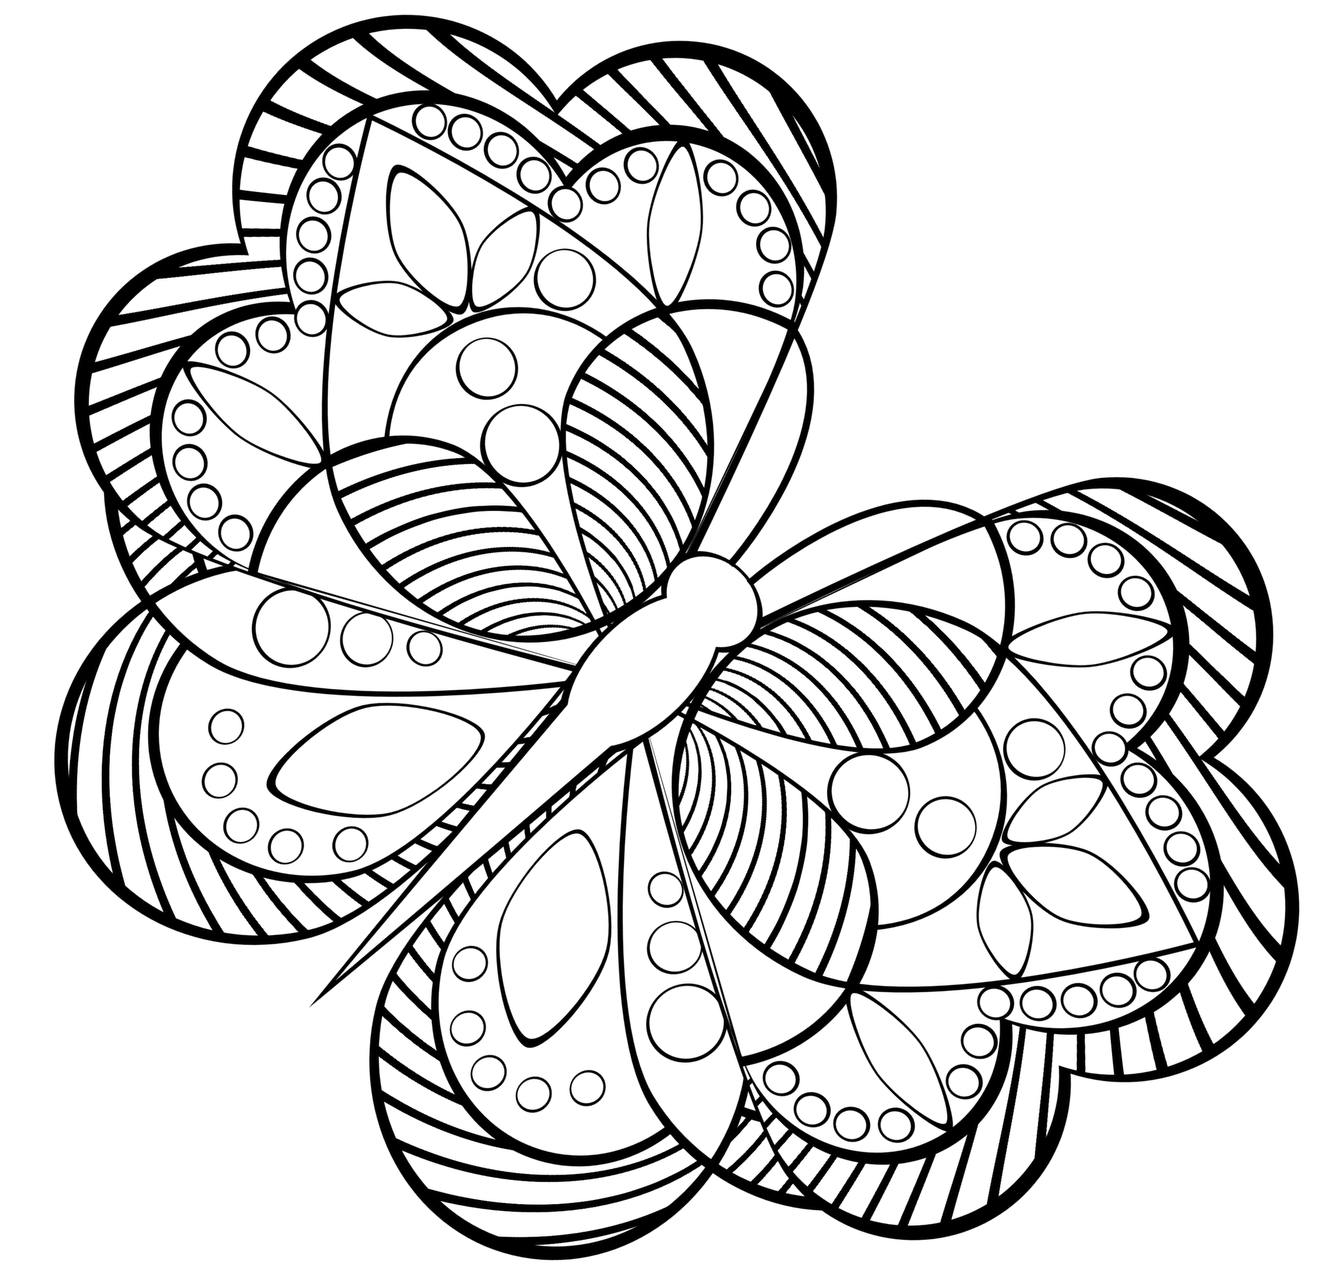 teenage colouring sheets best free printable coloring pages for kids and teens teenage colouring sheets